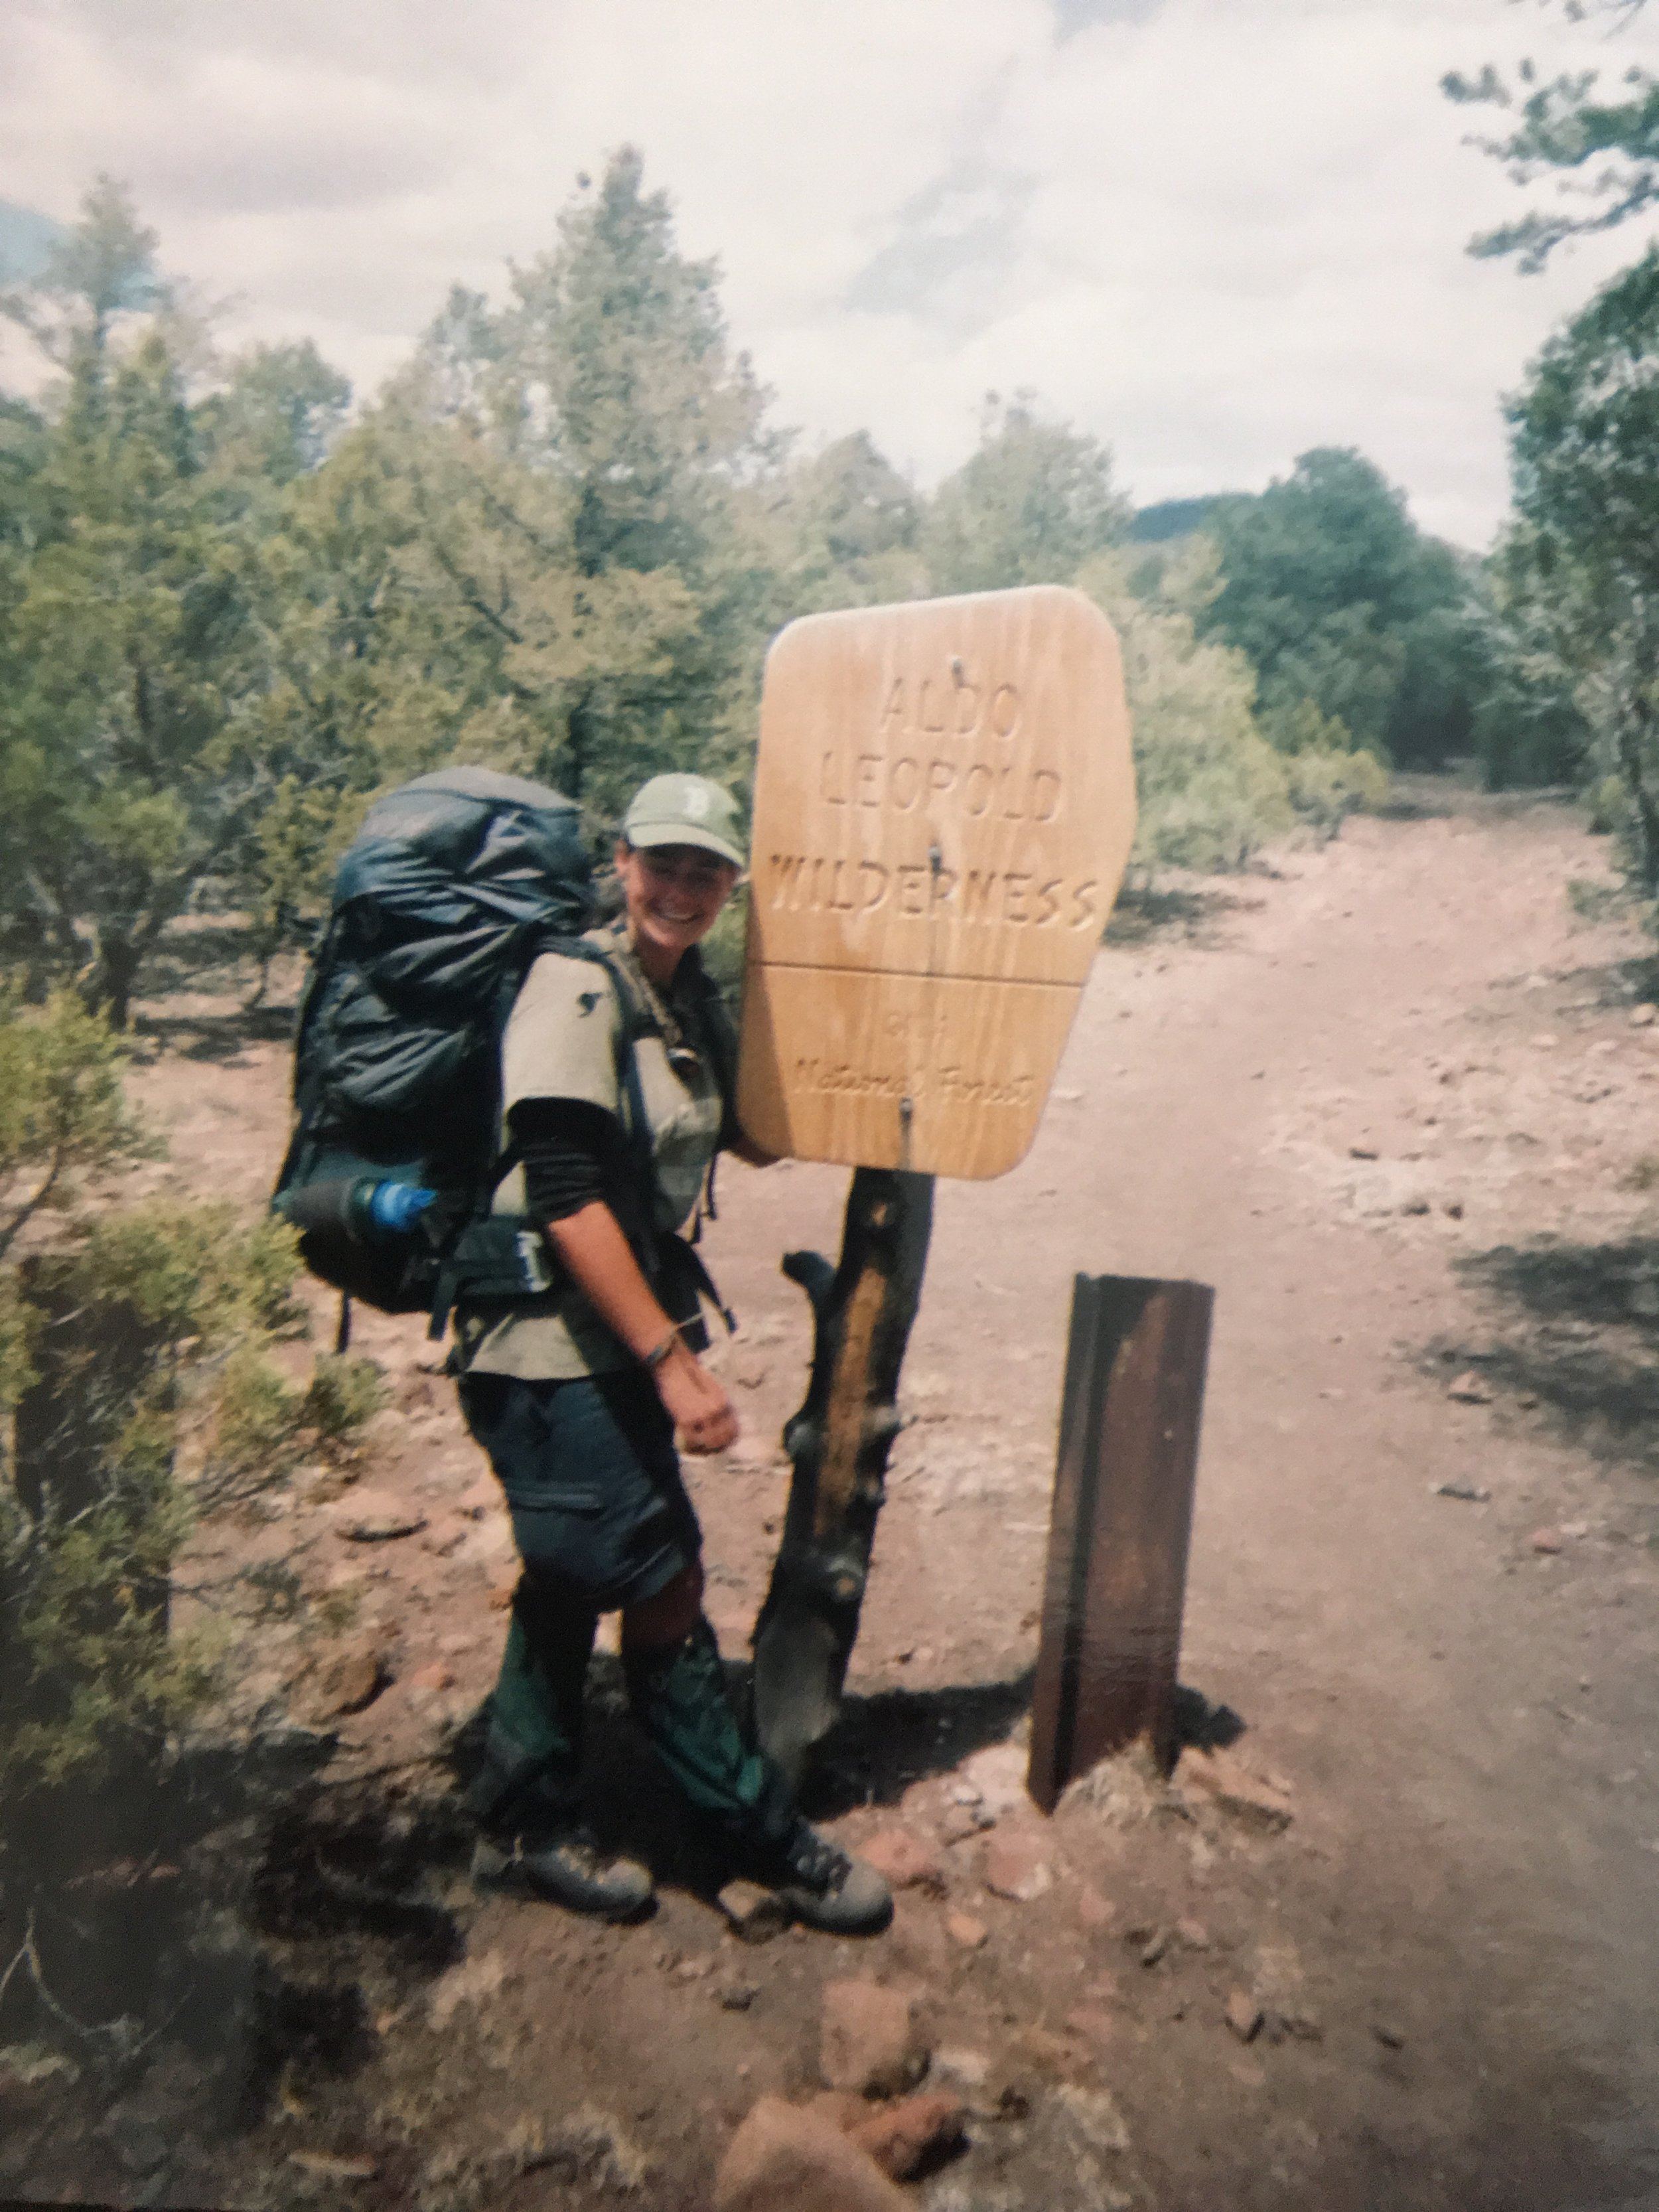 Backpacking in the Gila Wilderness, New Mexico around 2003